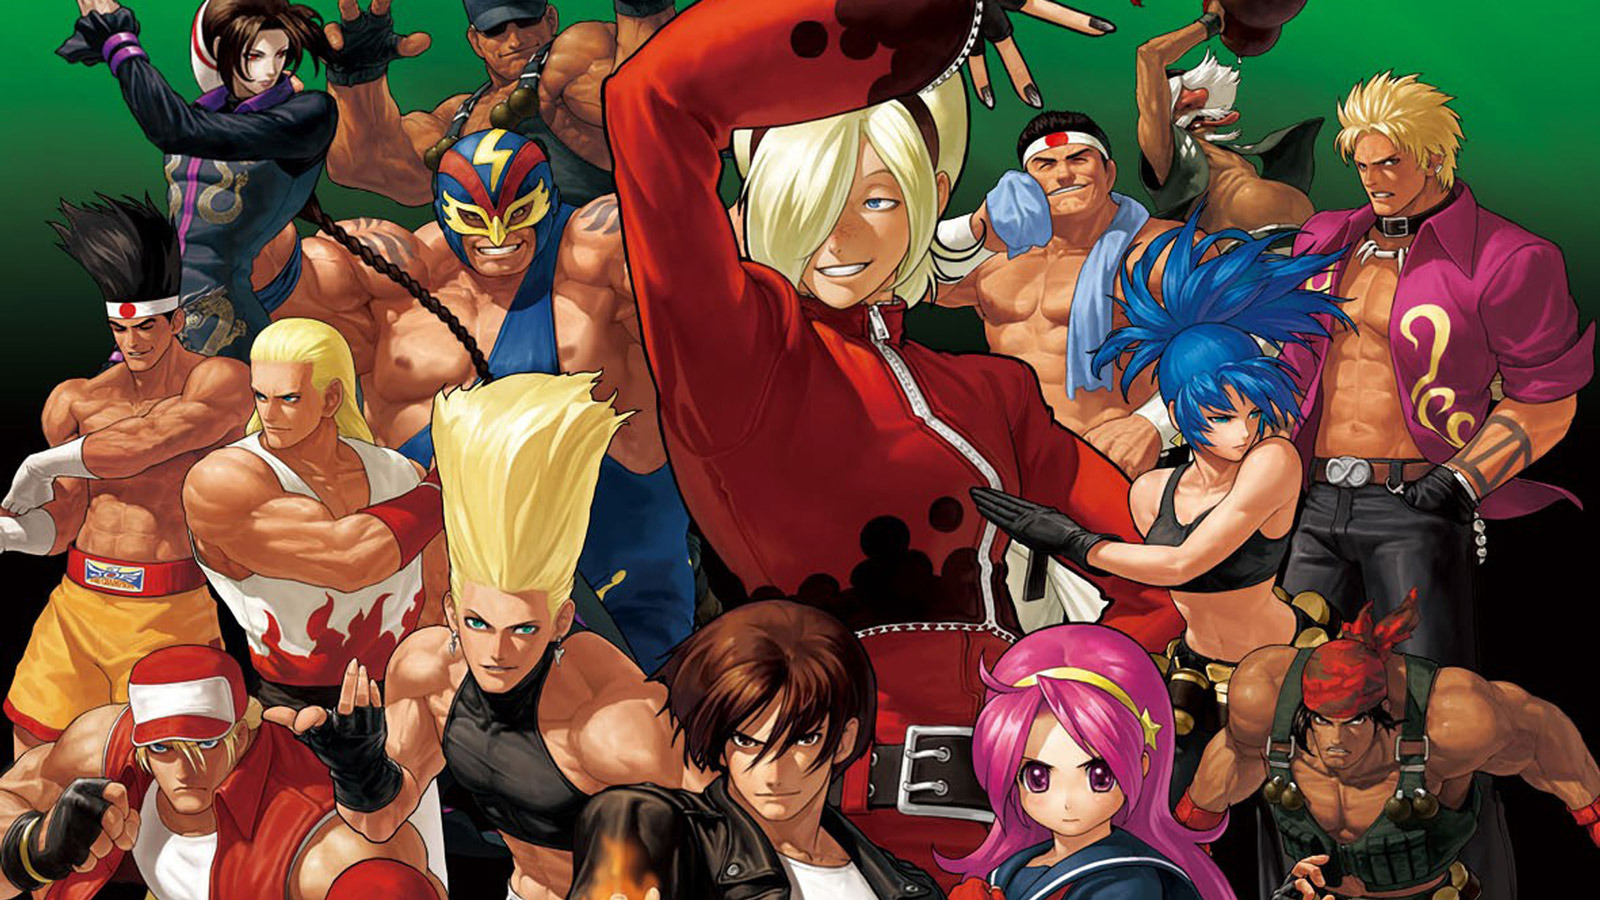 Free The King of Fighters XII Wallpaper in 1600x900